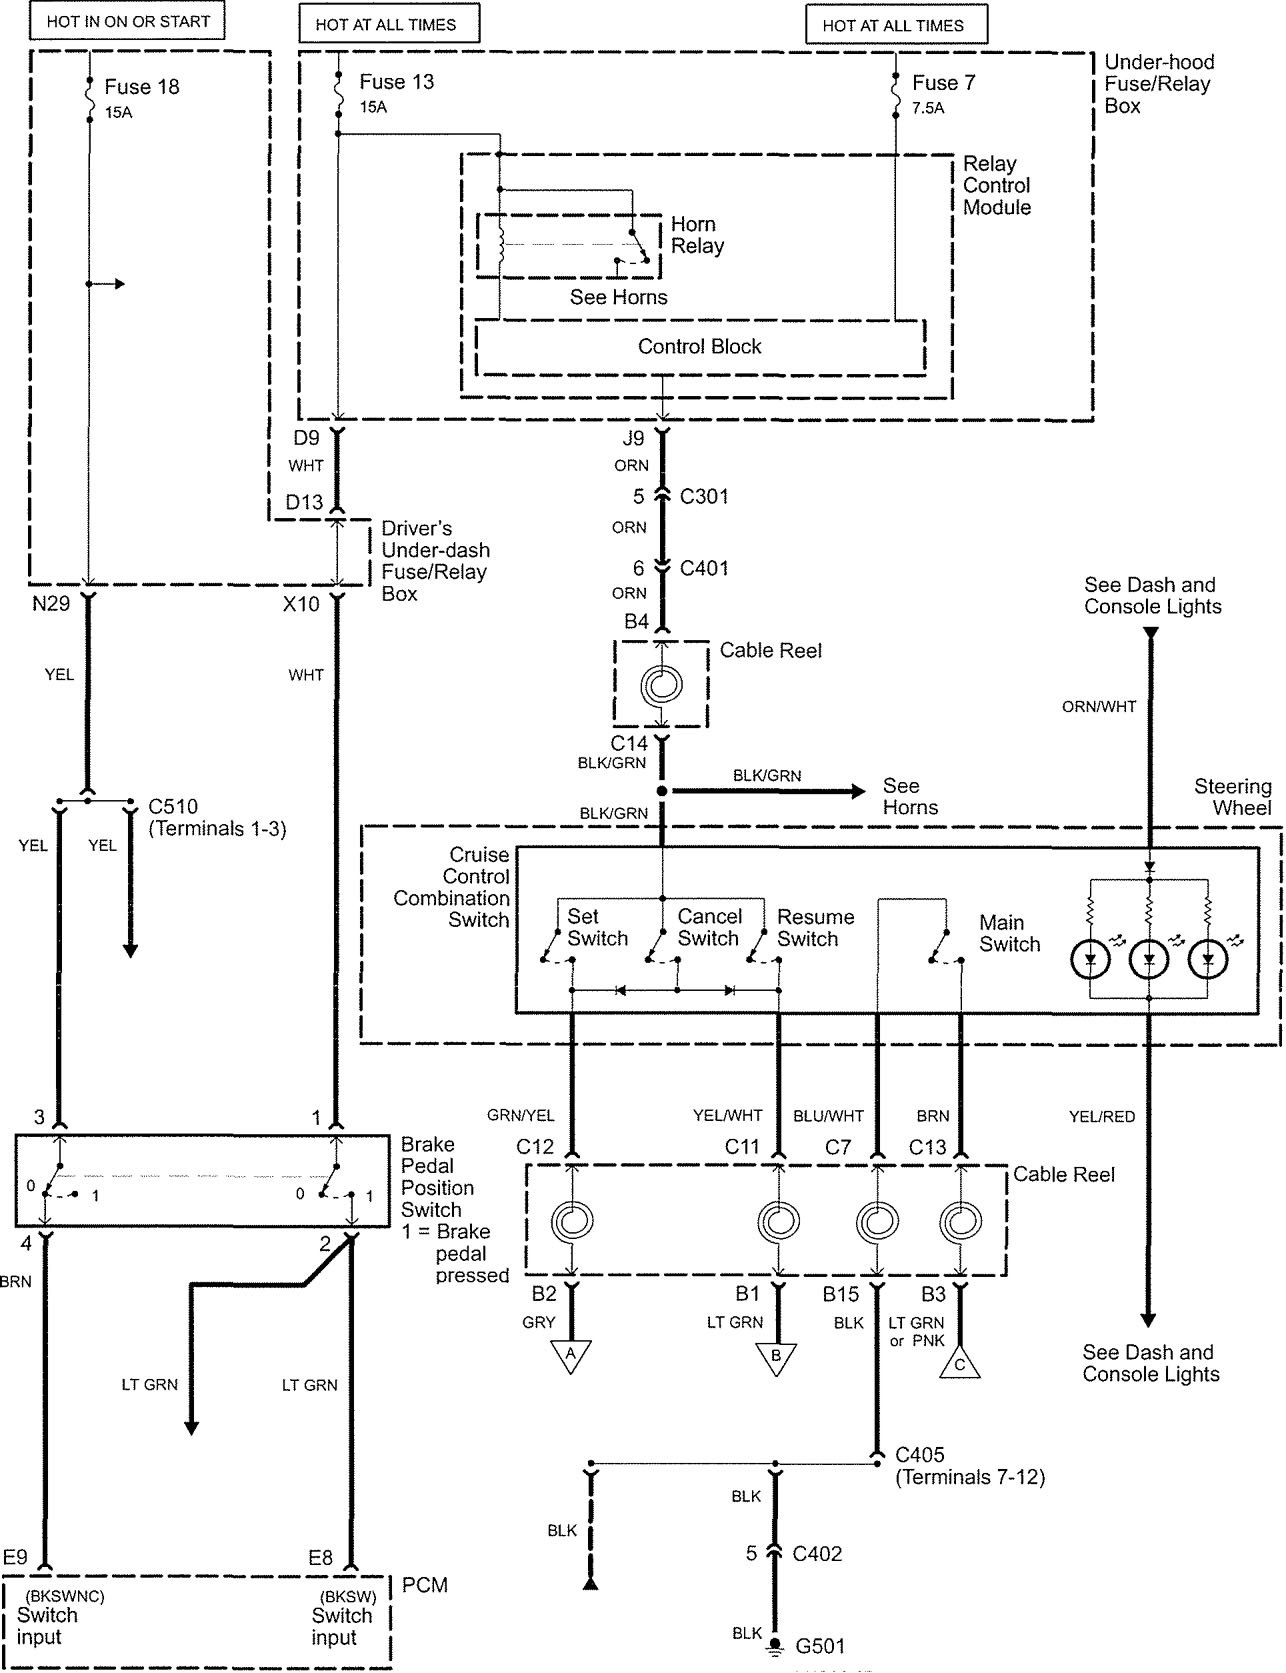 [DIAGRAM] Hyundai I40 Wiring Diagram FULL Version HD